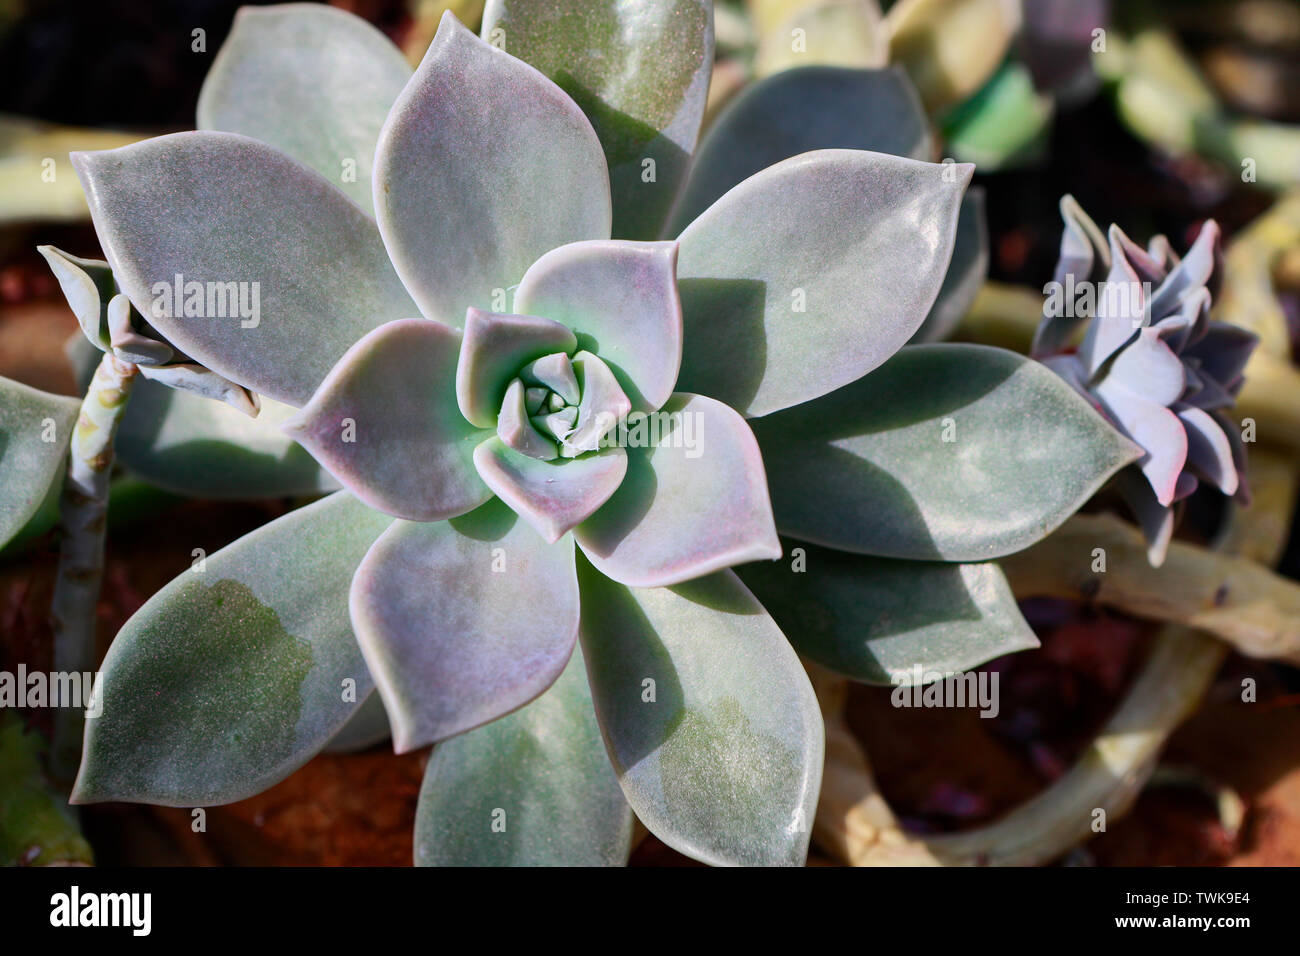 Graptopetalum Paraguayense Sedum Weinbergii Mother Of Pearl Plant Ghost Plant Succulent Plants Nature Photography Succulents And Cacti Stock Photo Alamy